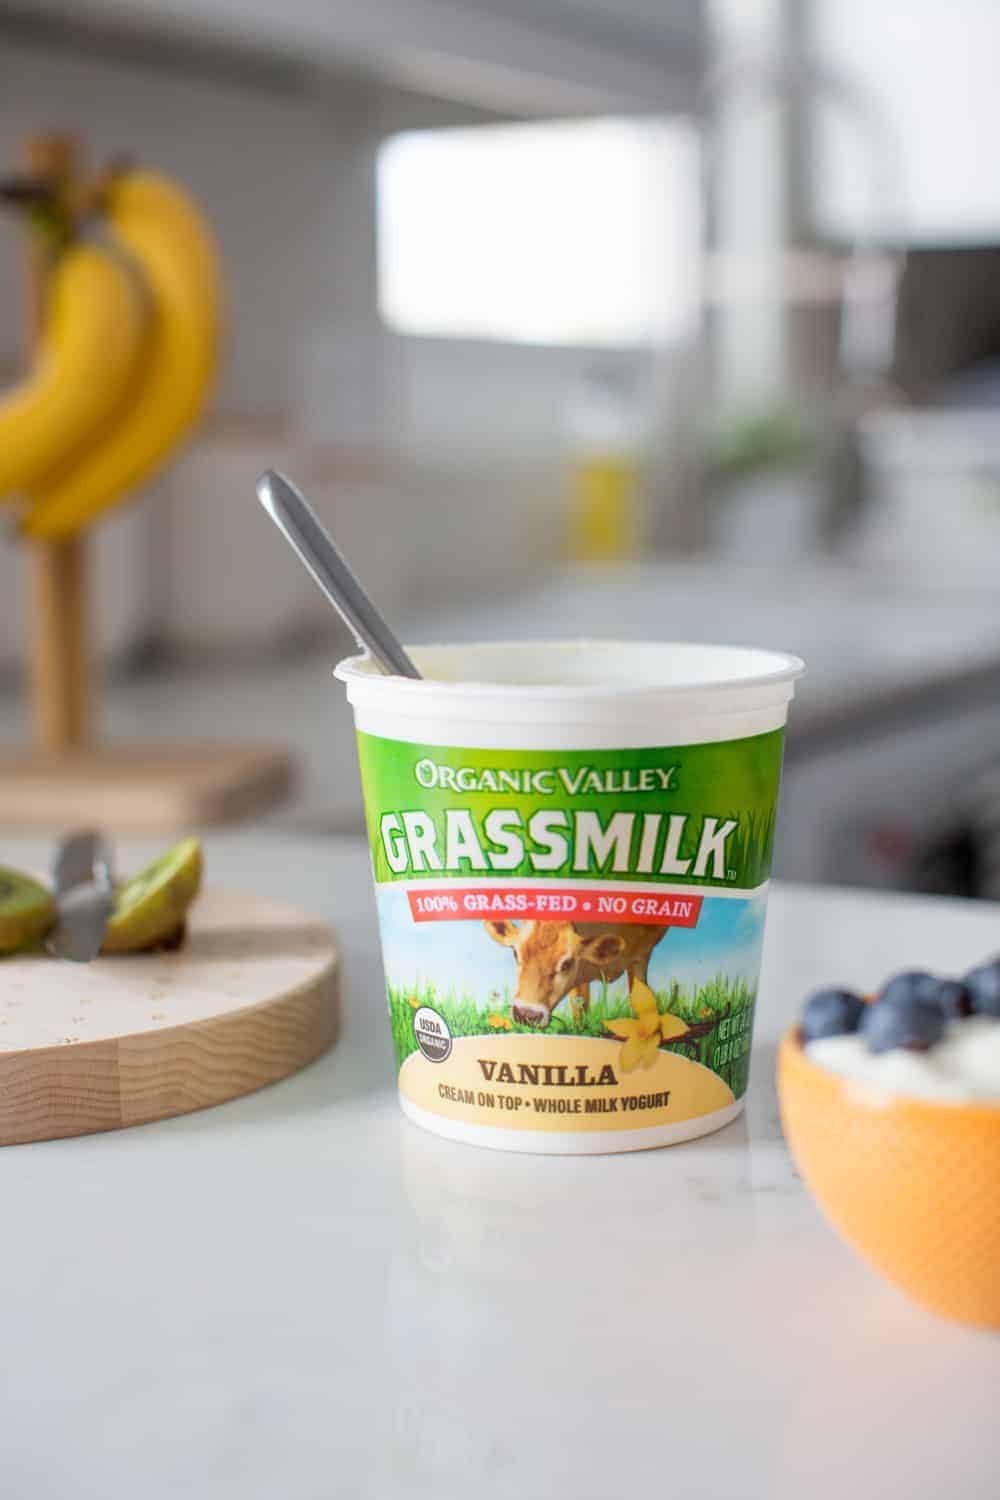 It's Not Just Hype - Grassmilk Yogurt Really Is Better